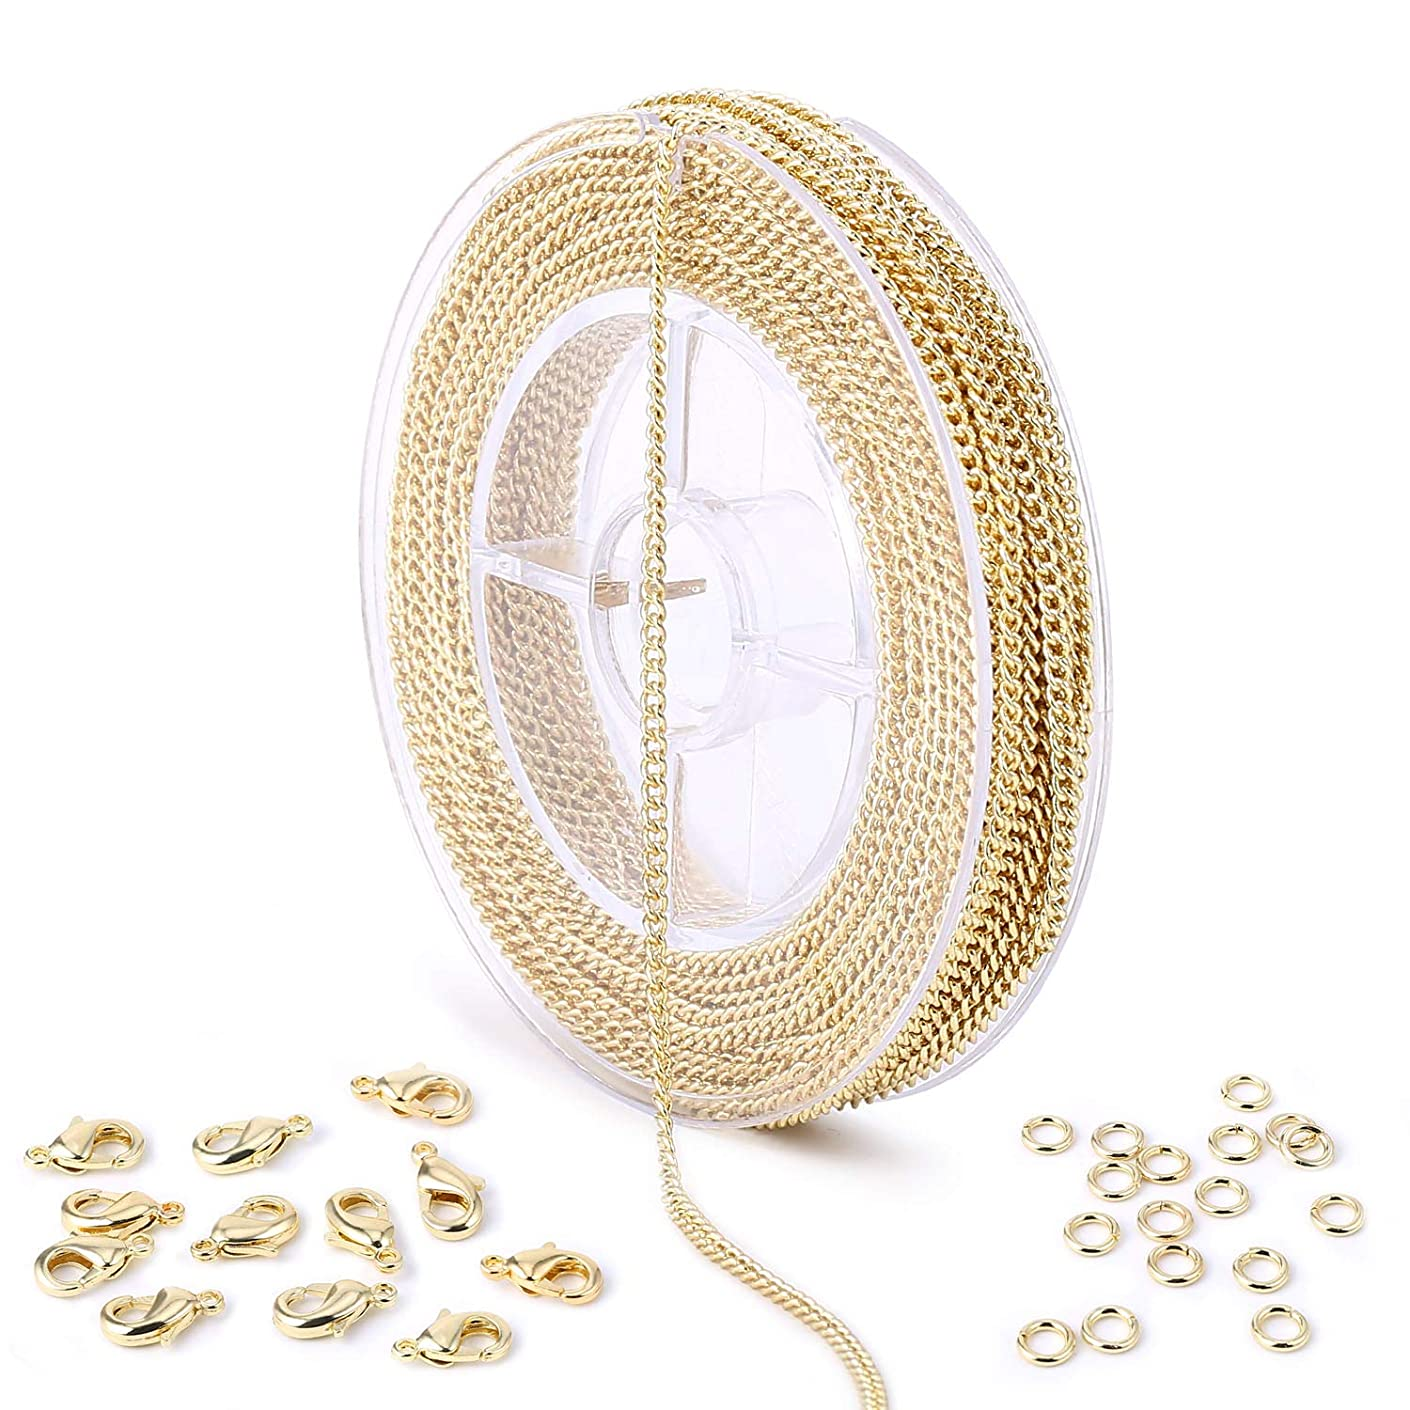 33 Feet Gold Curb Link Chain Spool Bulk with 4mm Jump Ring and Lobster Clasps for Craft DIY Necklace Jewelry Making